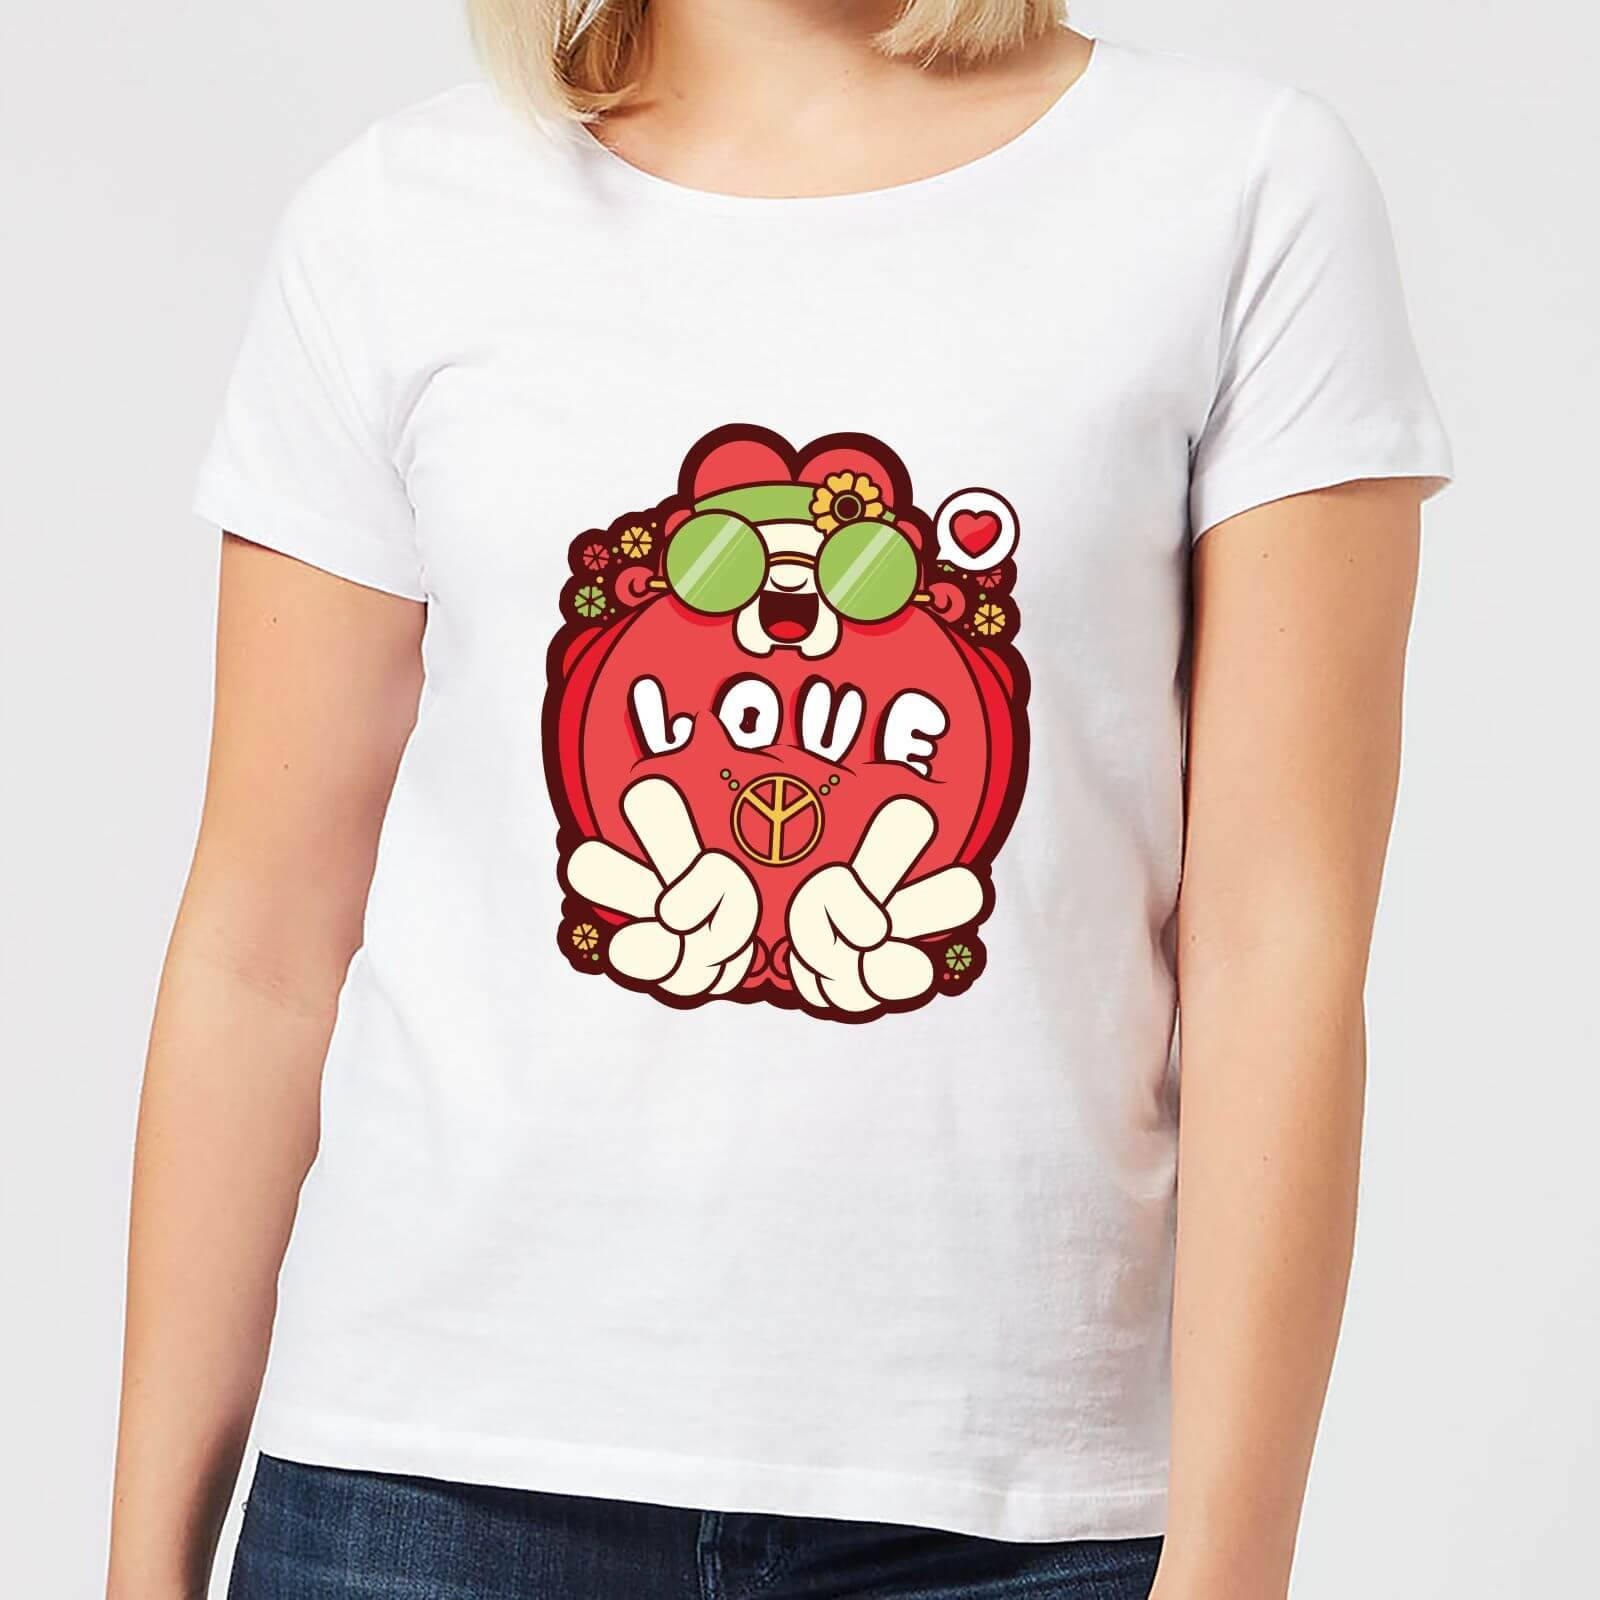 IWOOT Hippie Love Cartoon Women's T-Shirt - White - 4XL - White